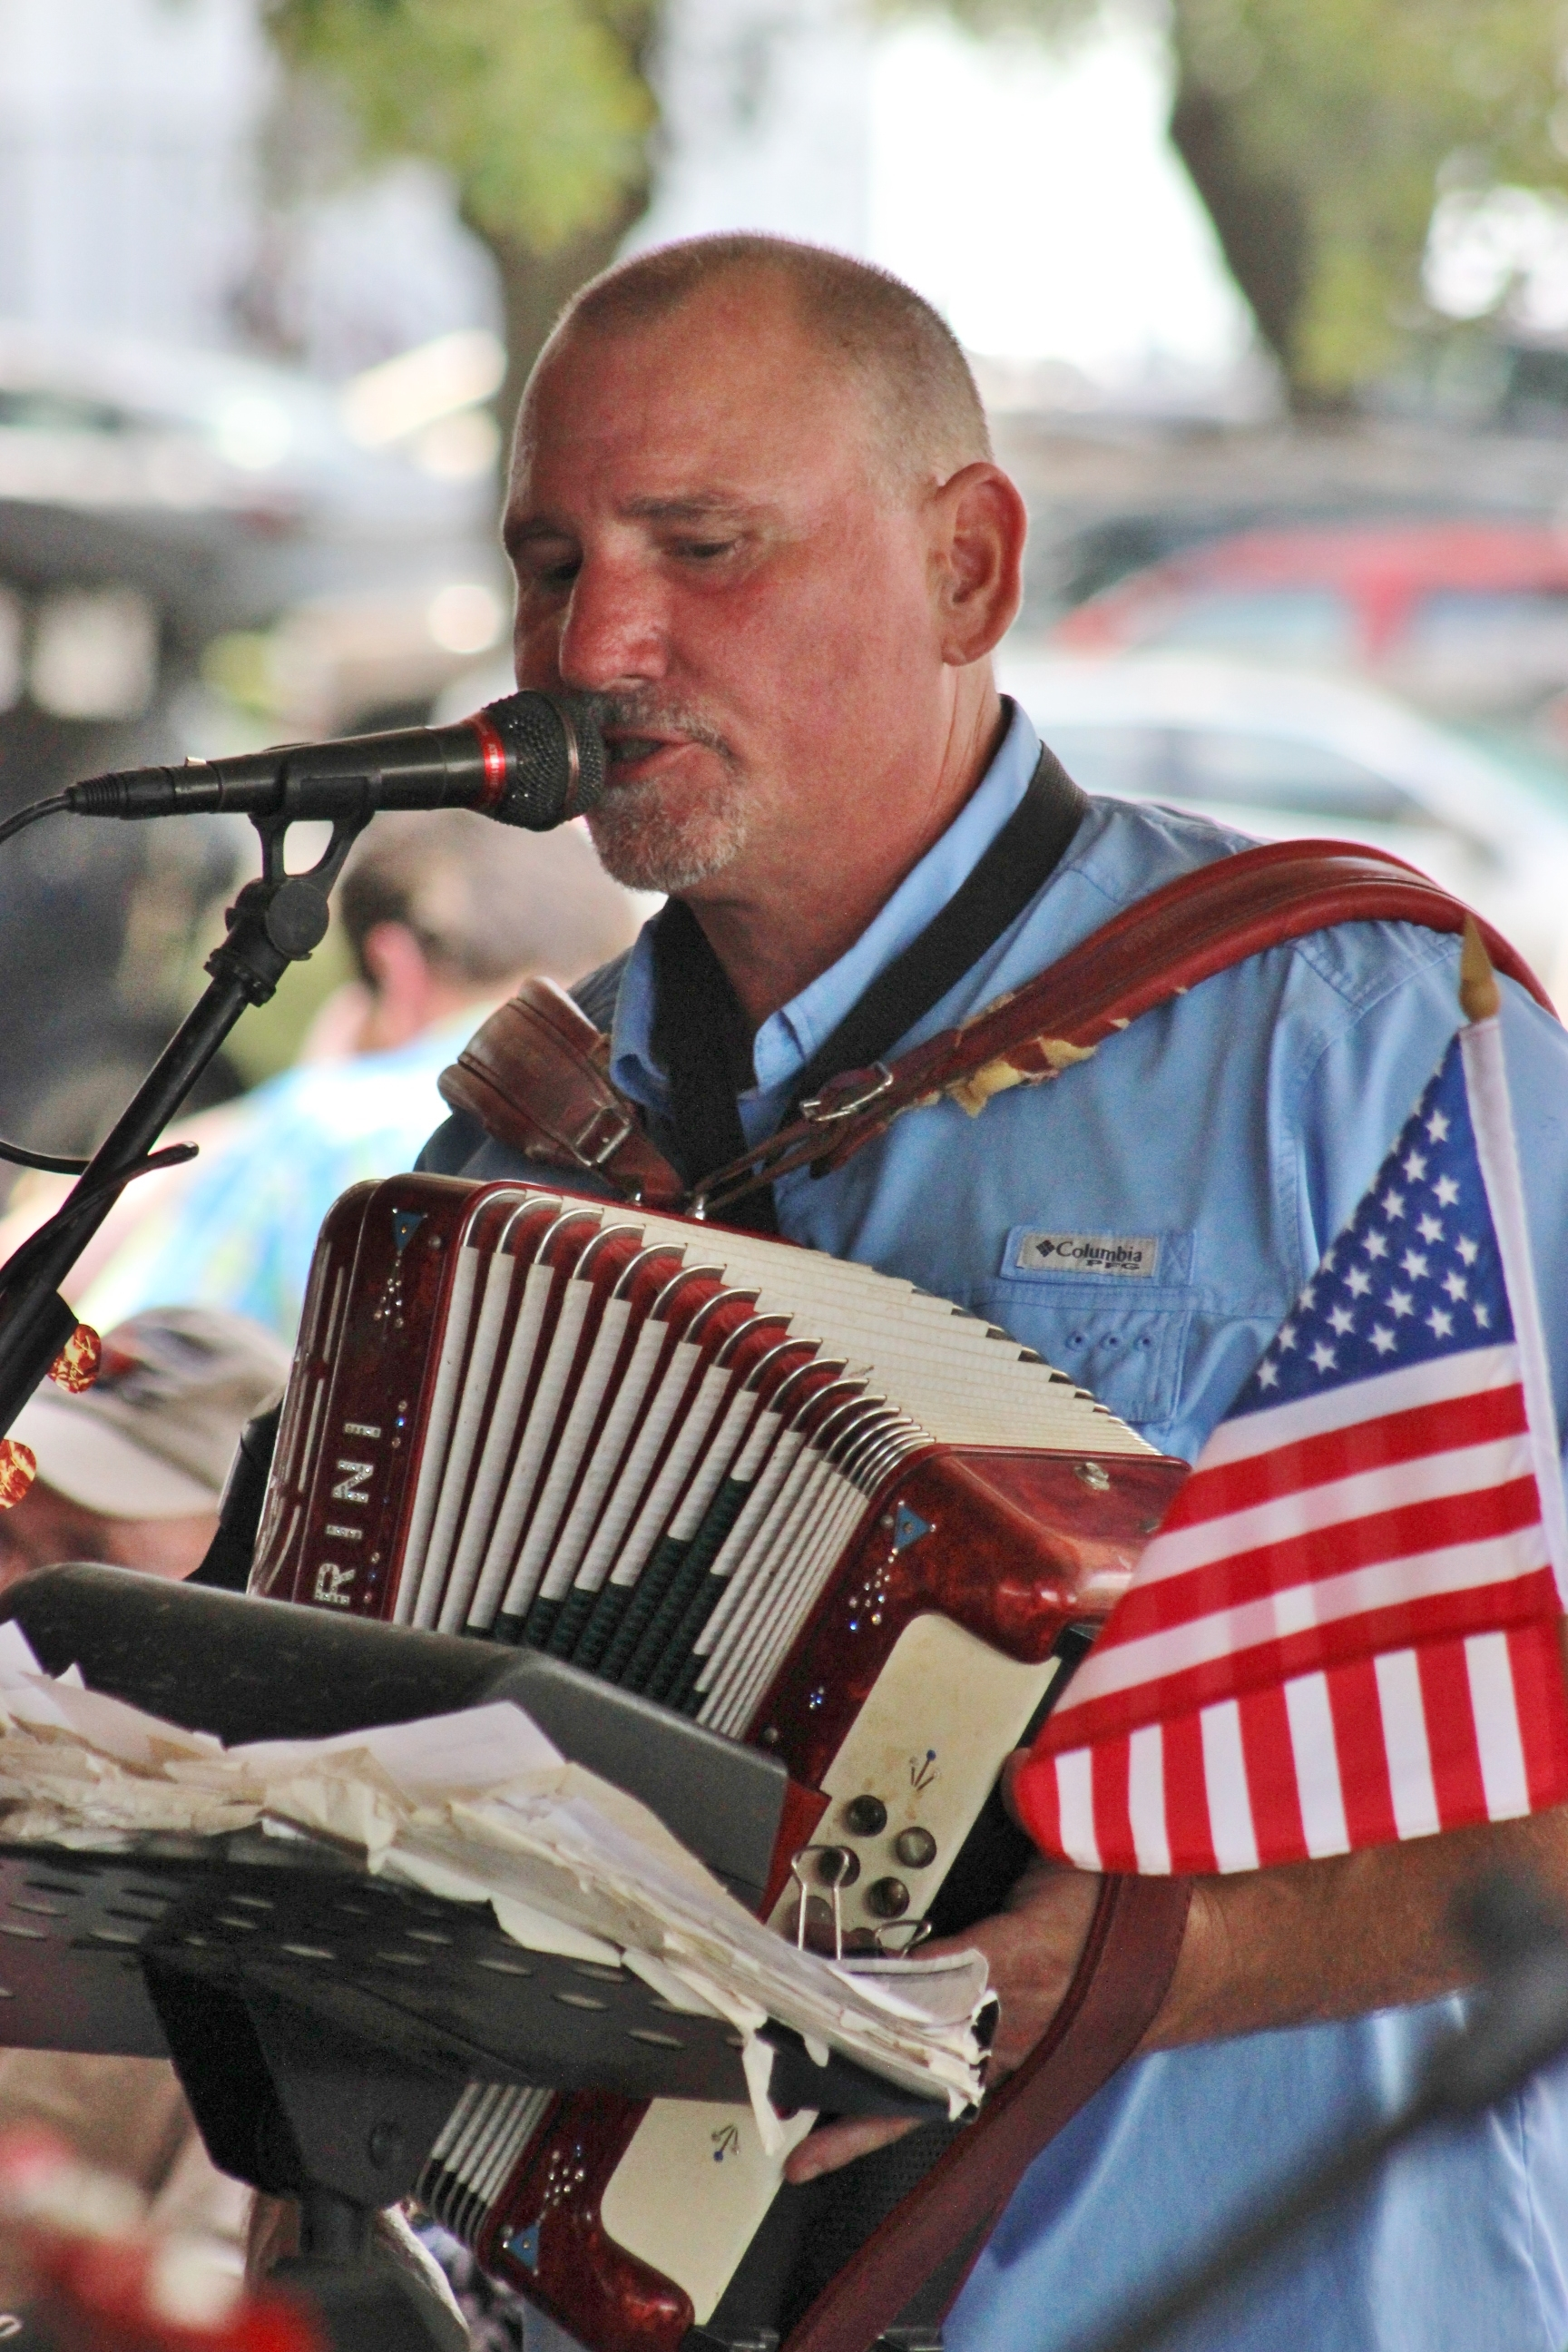 Mark at 2016 July 4th St. John picnic. Dujka Brothers have been performing at the picnic since 1987.